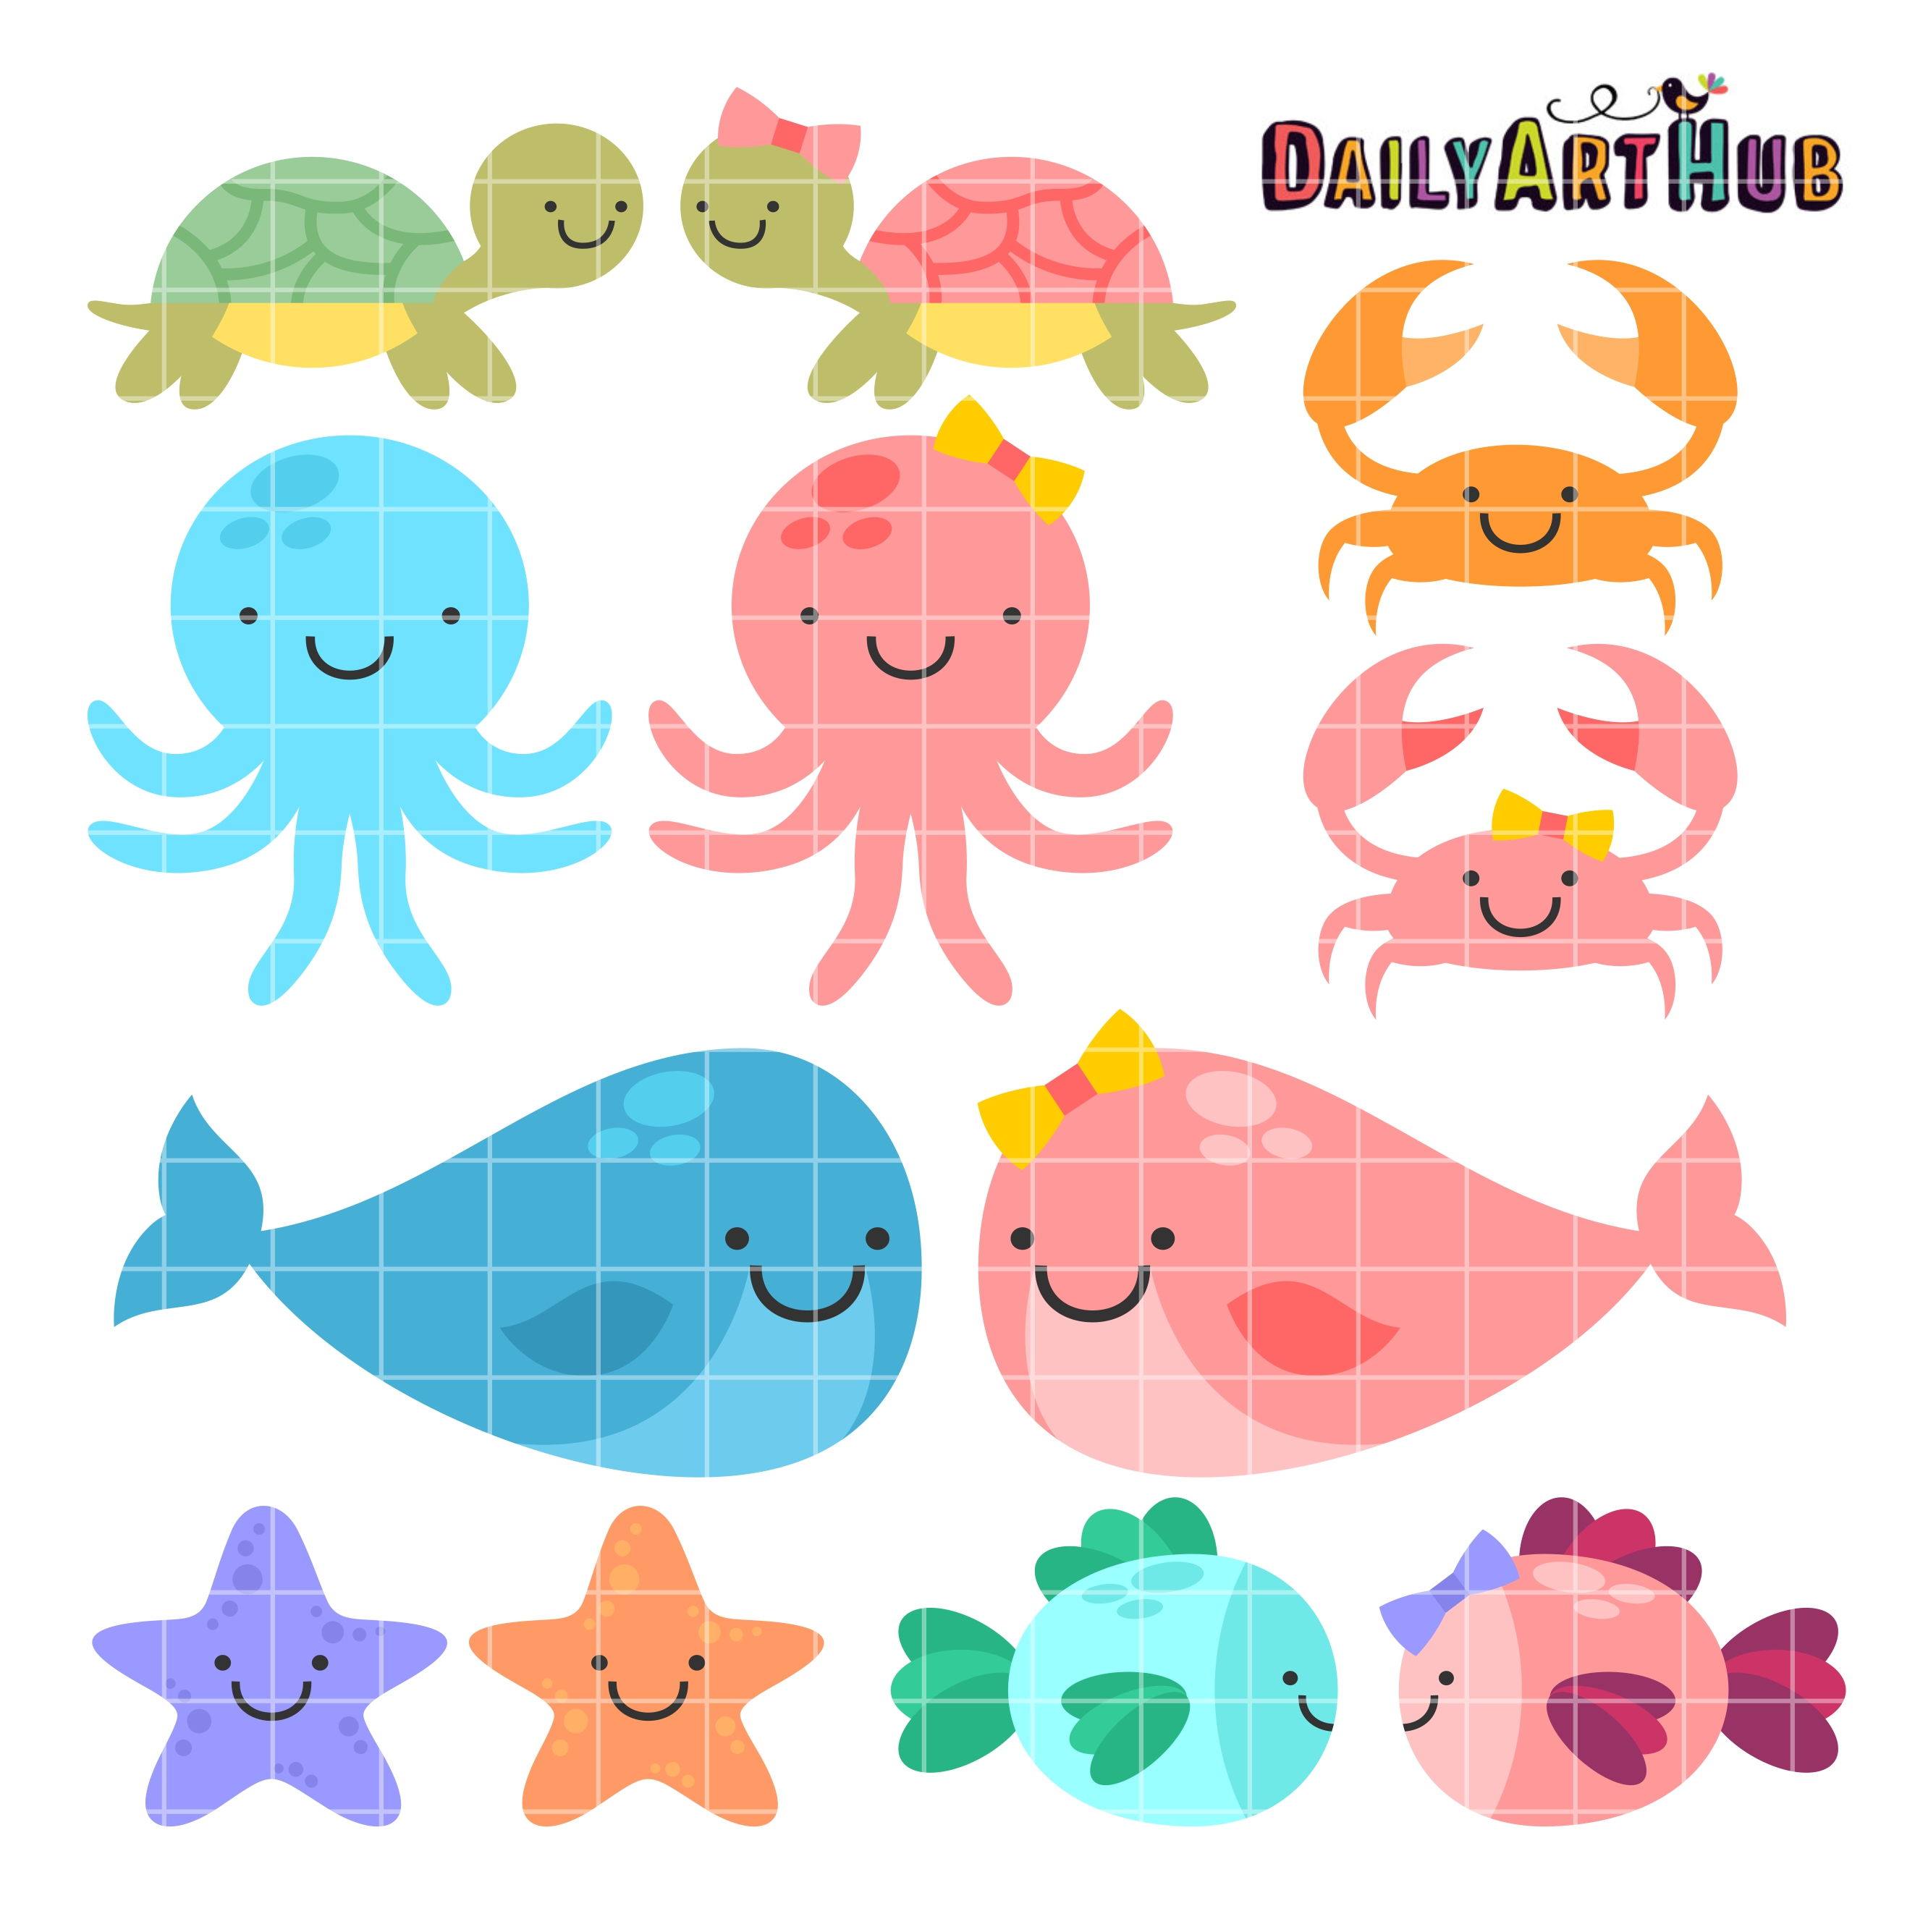 cute baby sea animals clip art set daily art hub free clip art rh dailyarthub com sea animals clipart black and white sea animal clipart